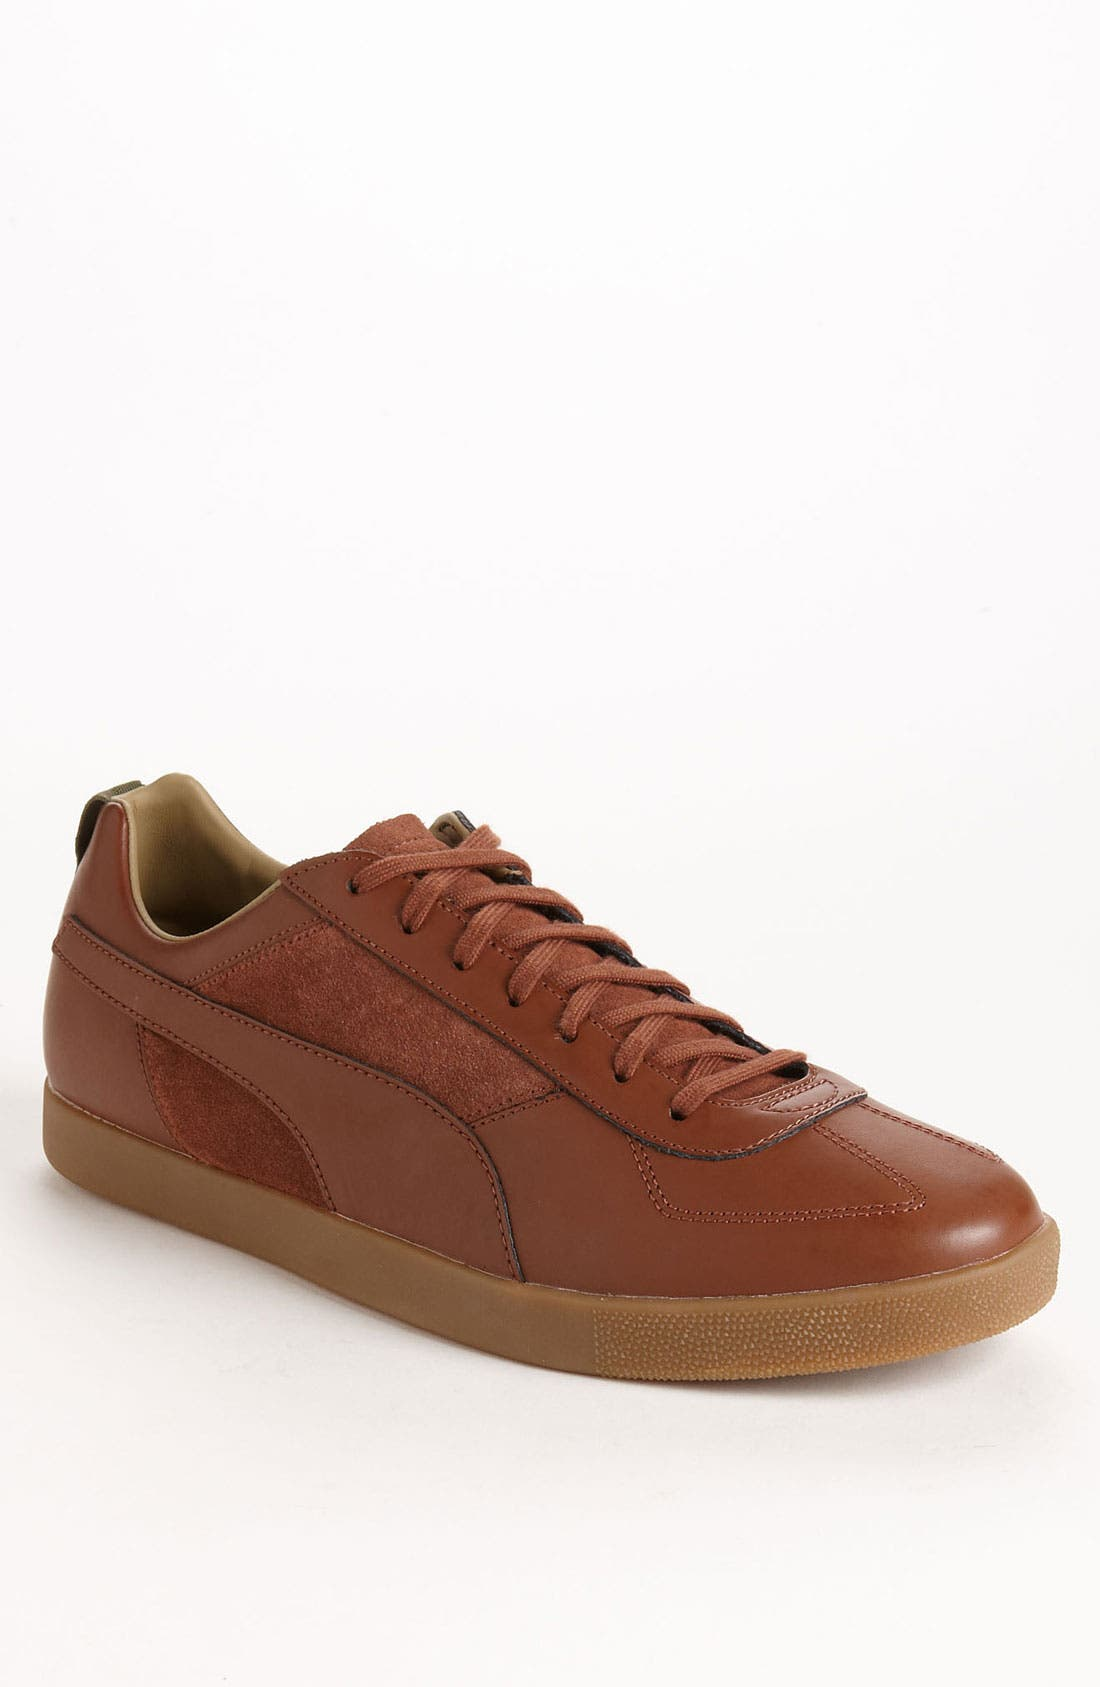 Alternate Image 1 Selected - PUMA 'Dassler - Ansbach Lo' Sneaker